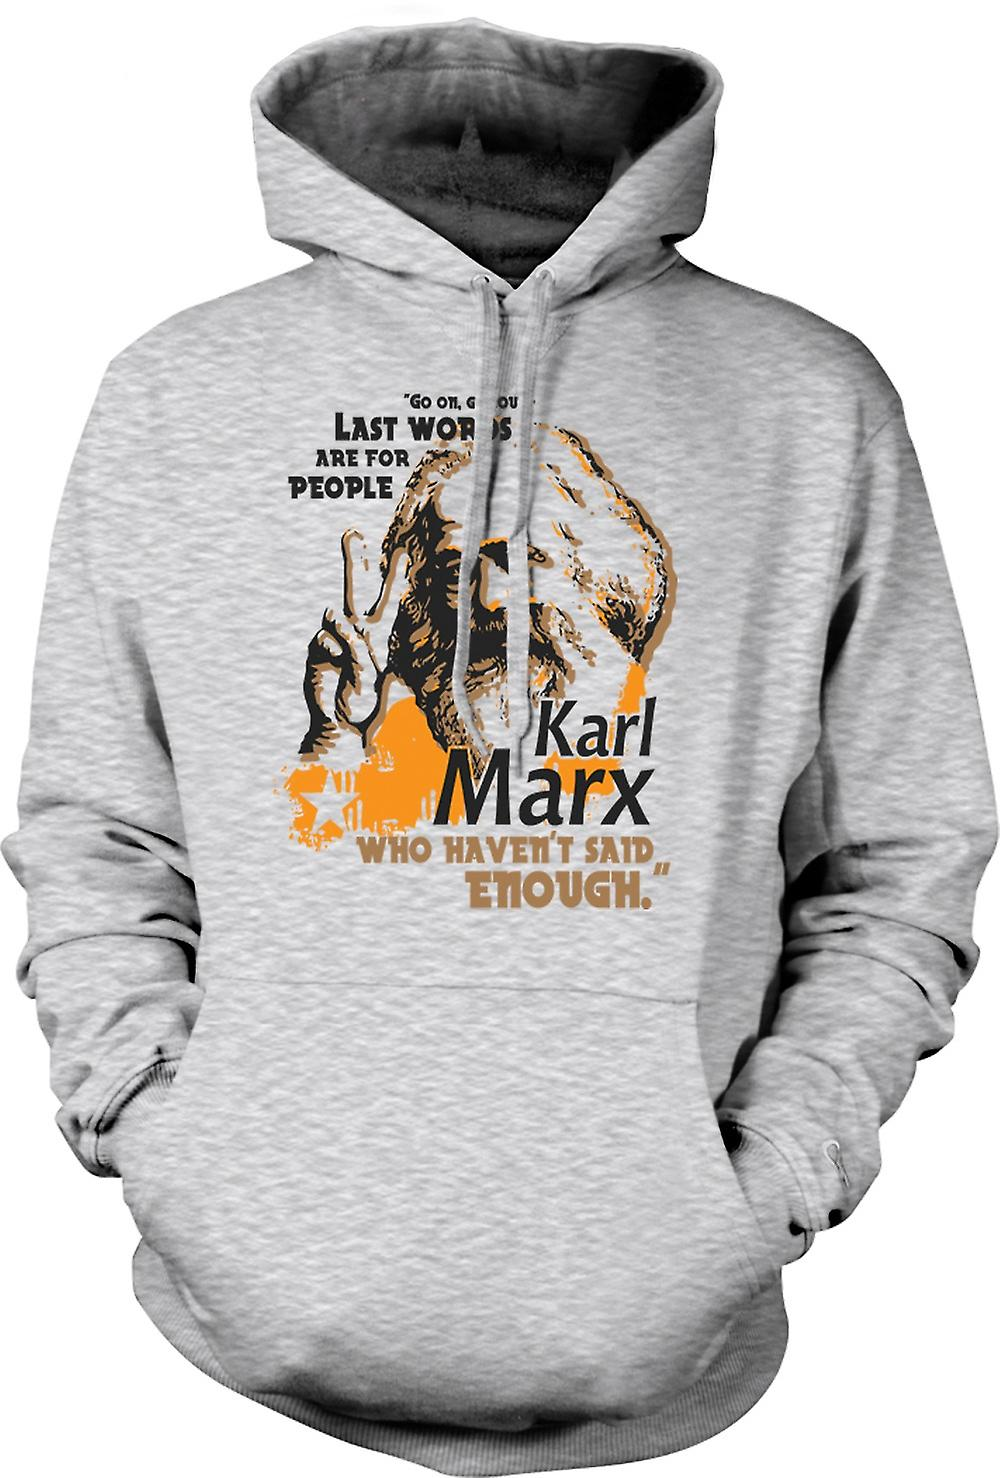 Mens Hoodie - Karl Marx Last Words - Communism - Marxism